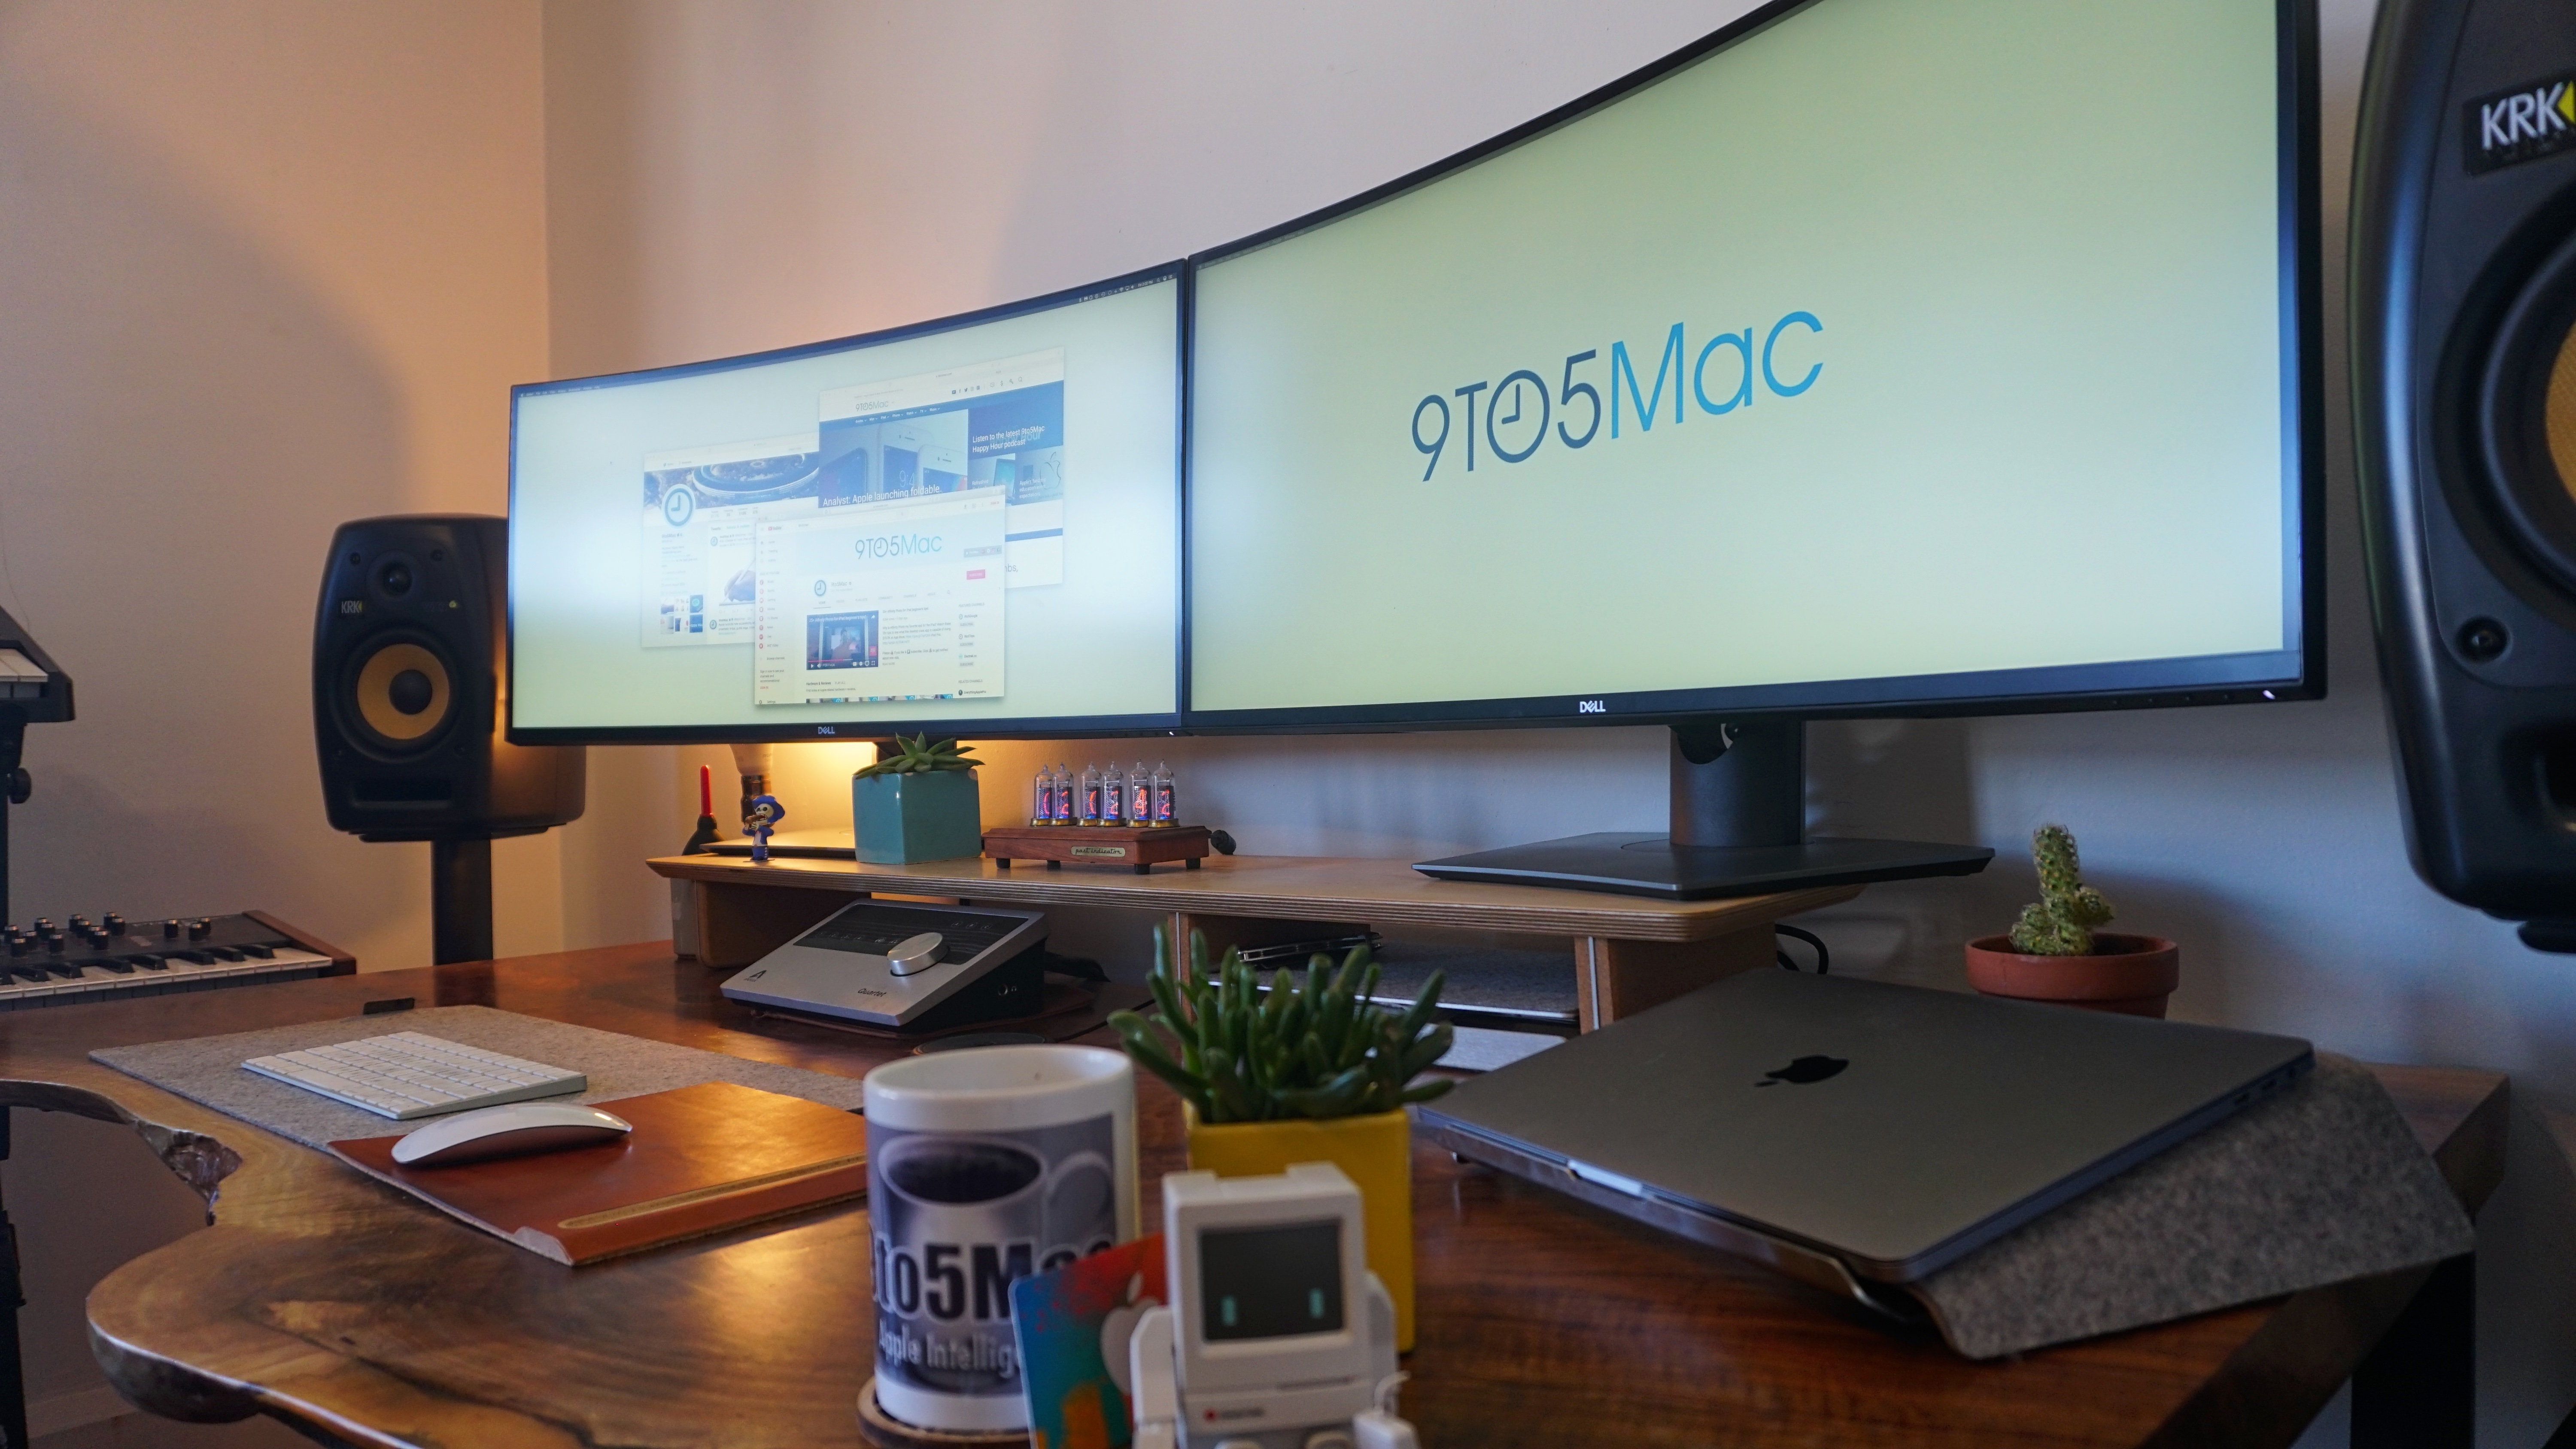 Behind the Screens: Jordan's dual 38-inch curved widescreen monitor battlestation